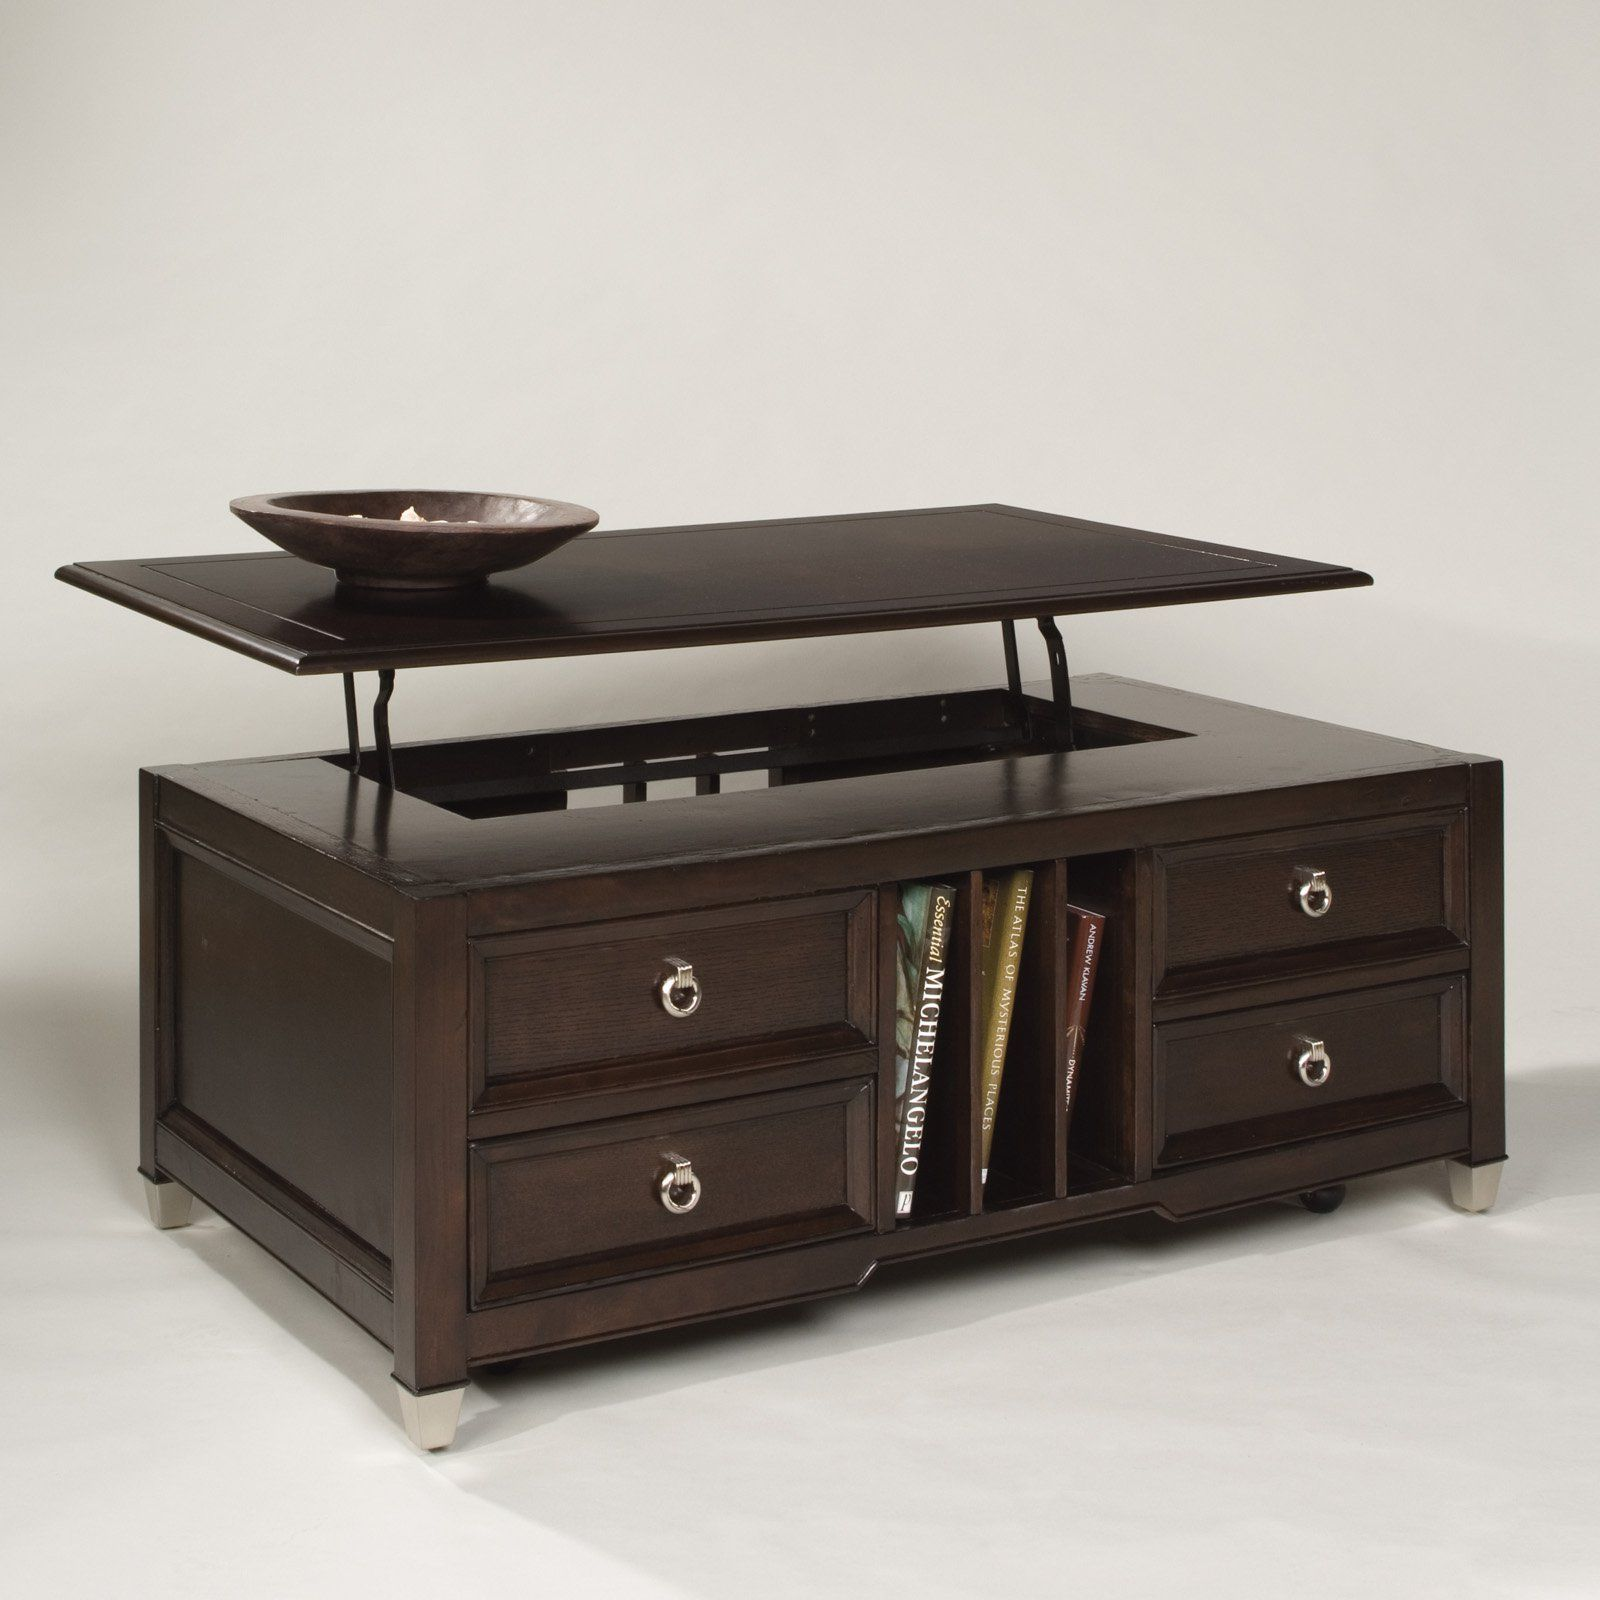 top with tables beautiful coffee designs storage lift photo table